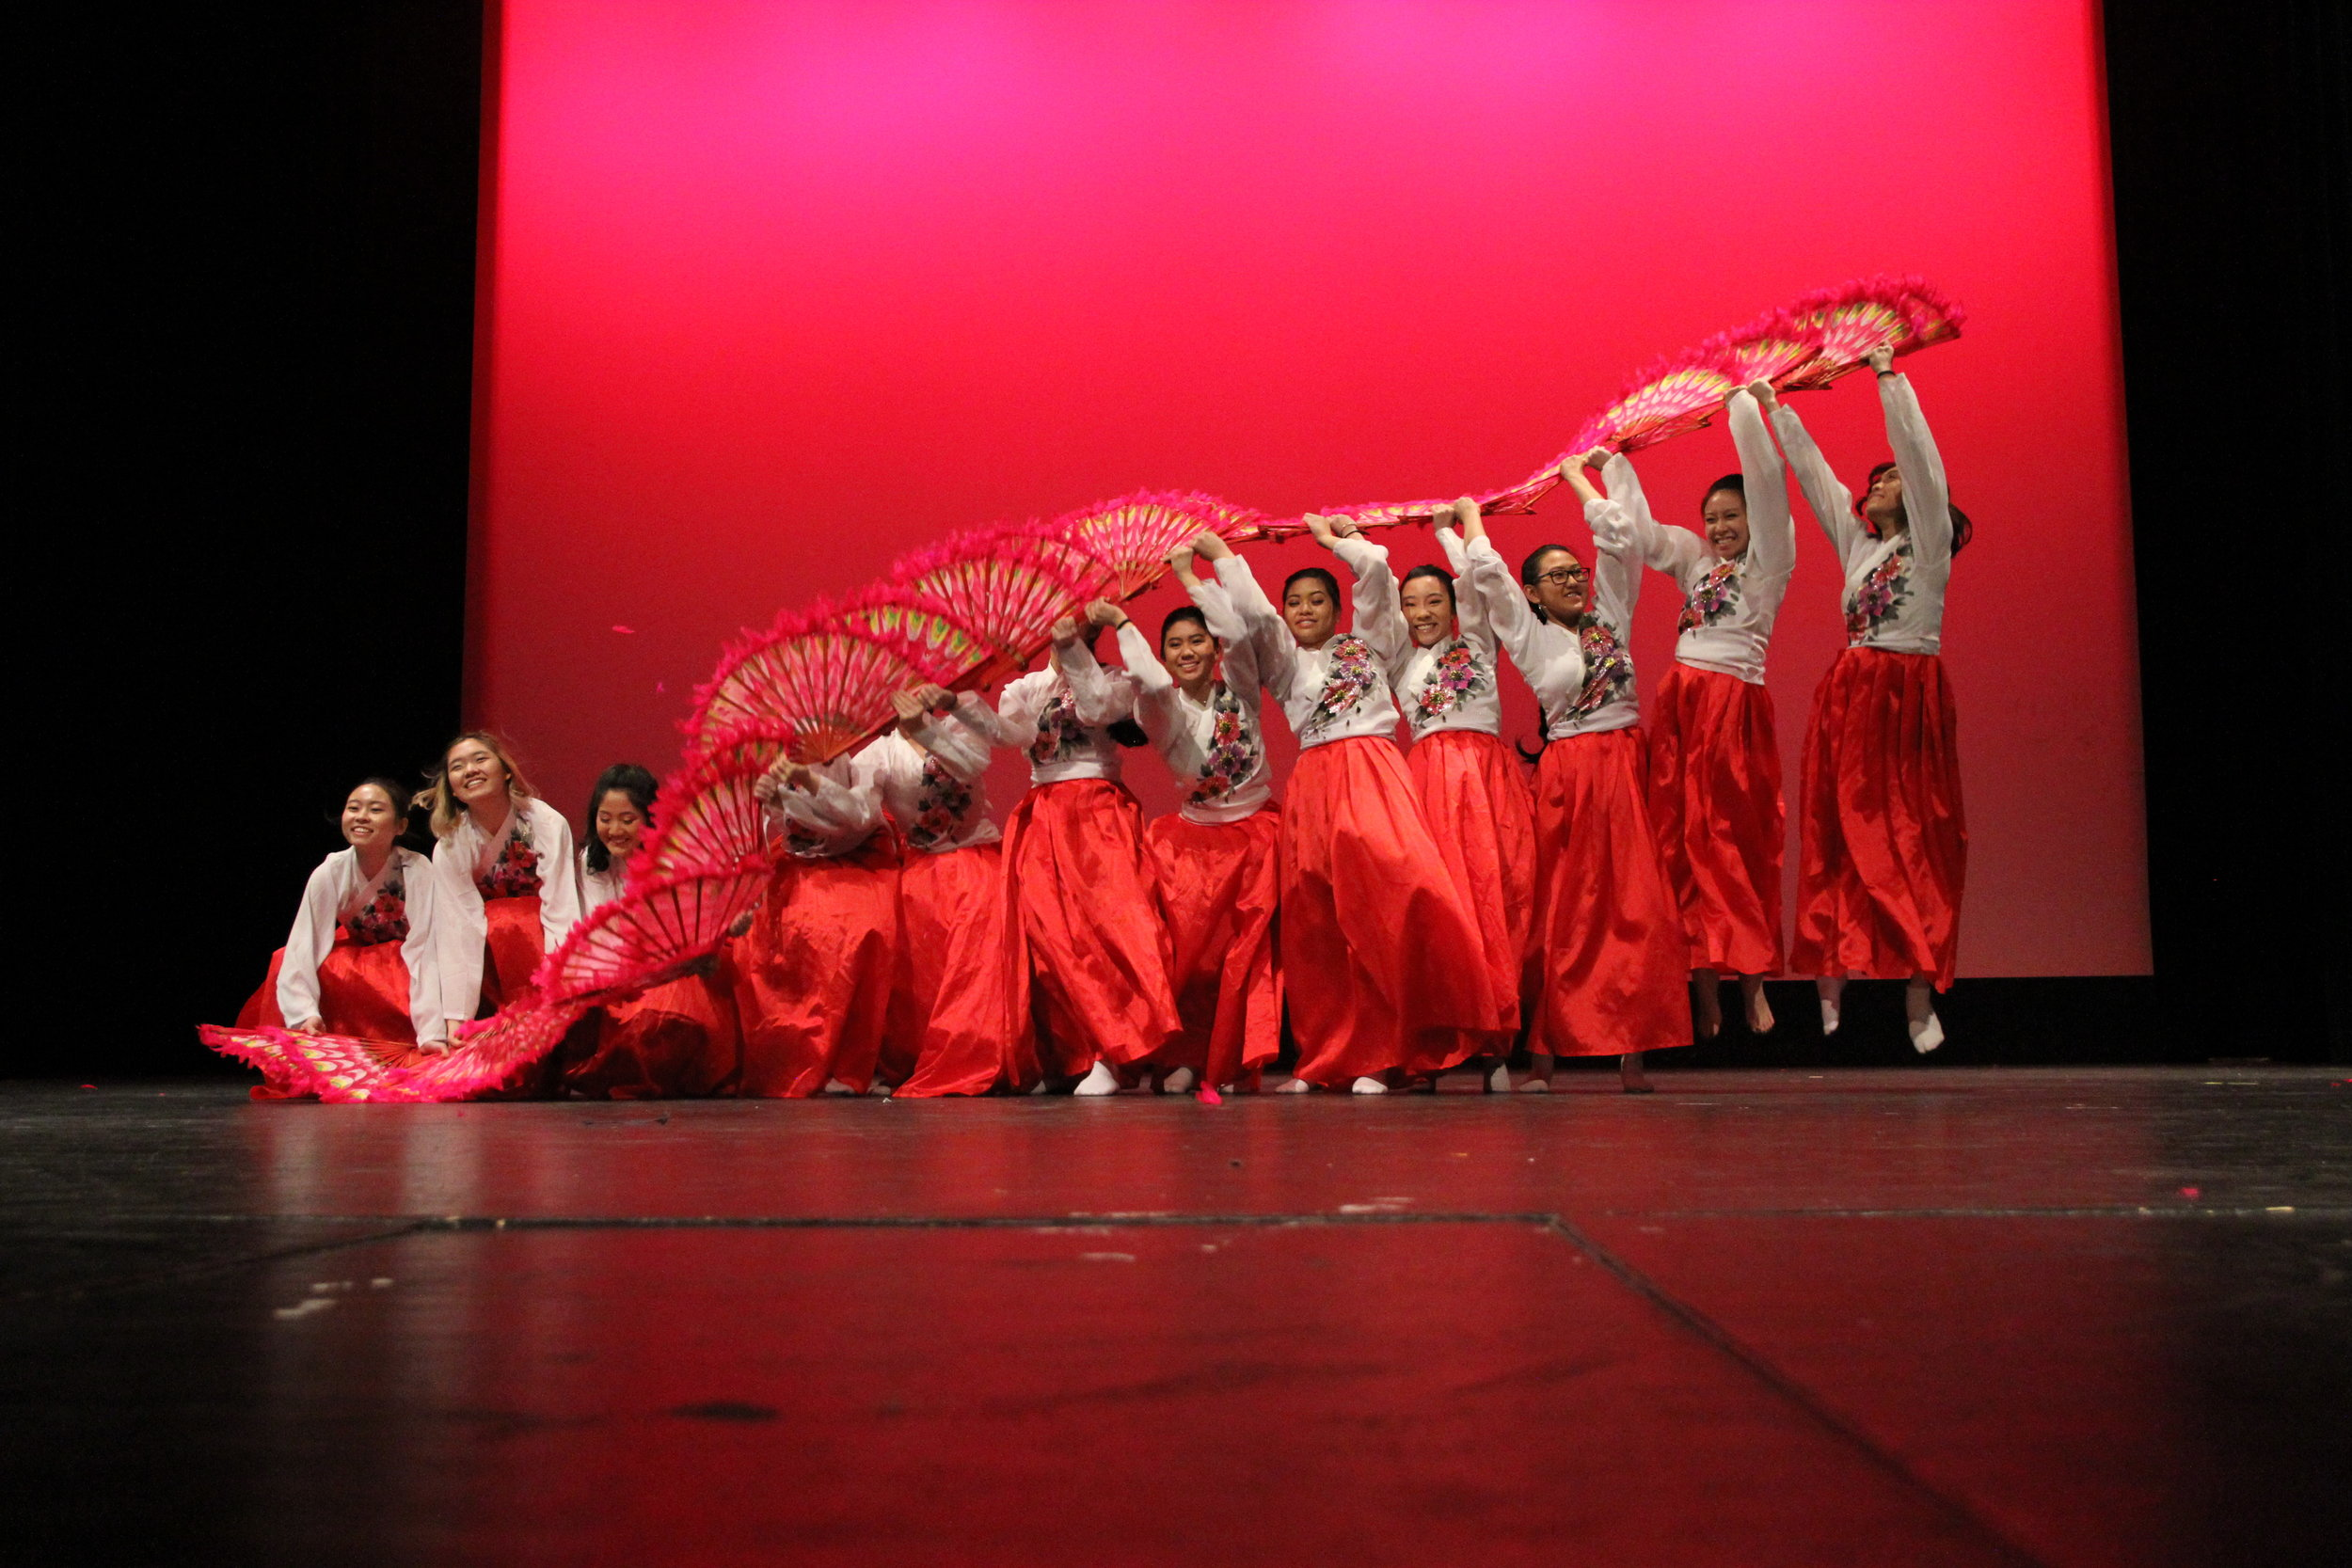 Korean Fan Dance creates a monstrous wave with their traditional red fans as gasps of awe erupt from the audience